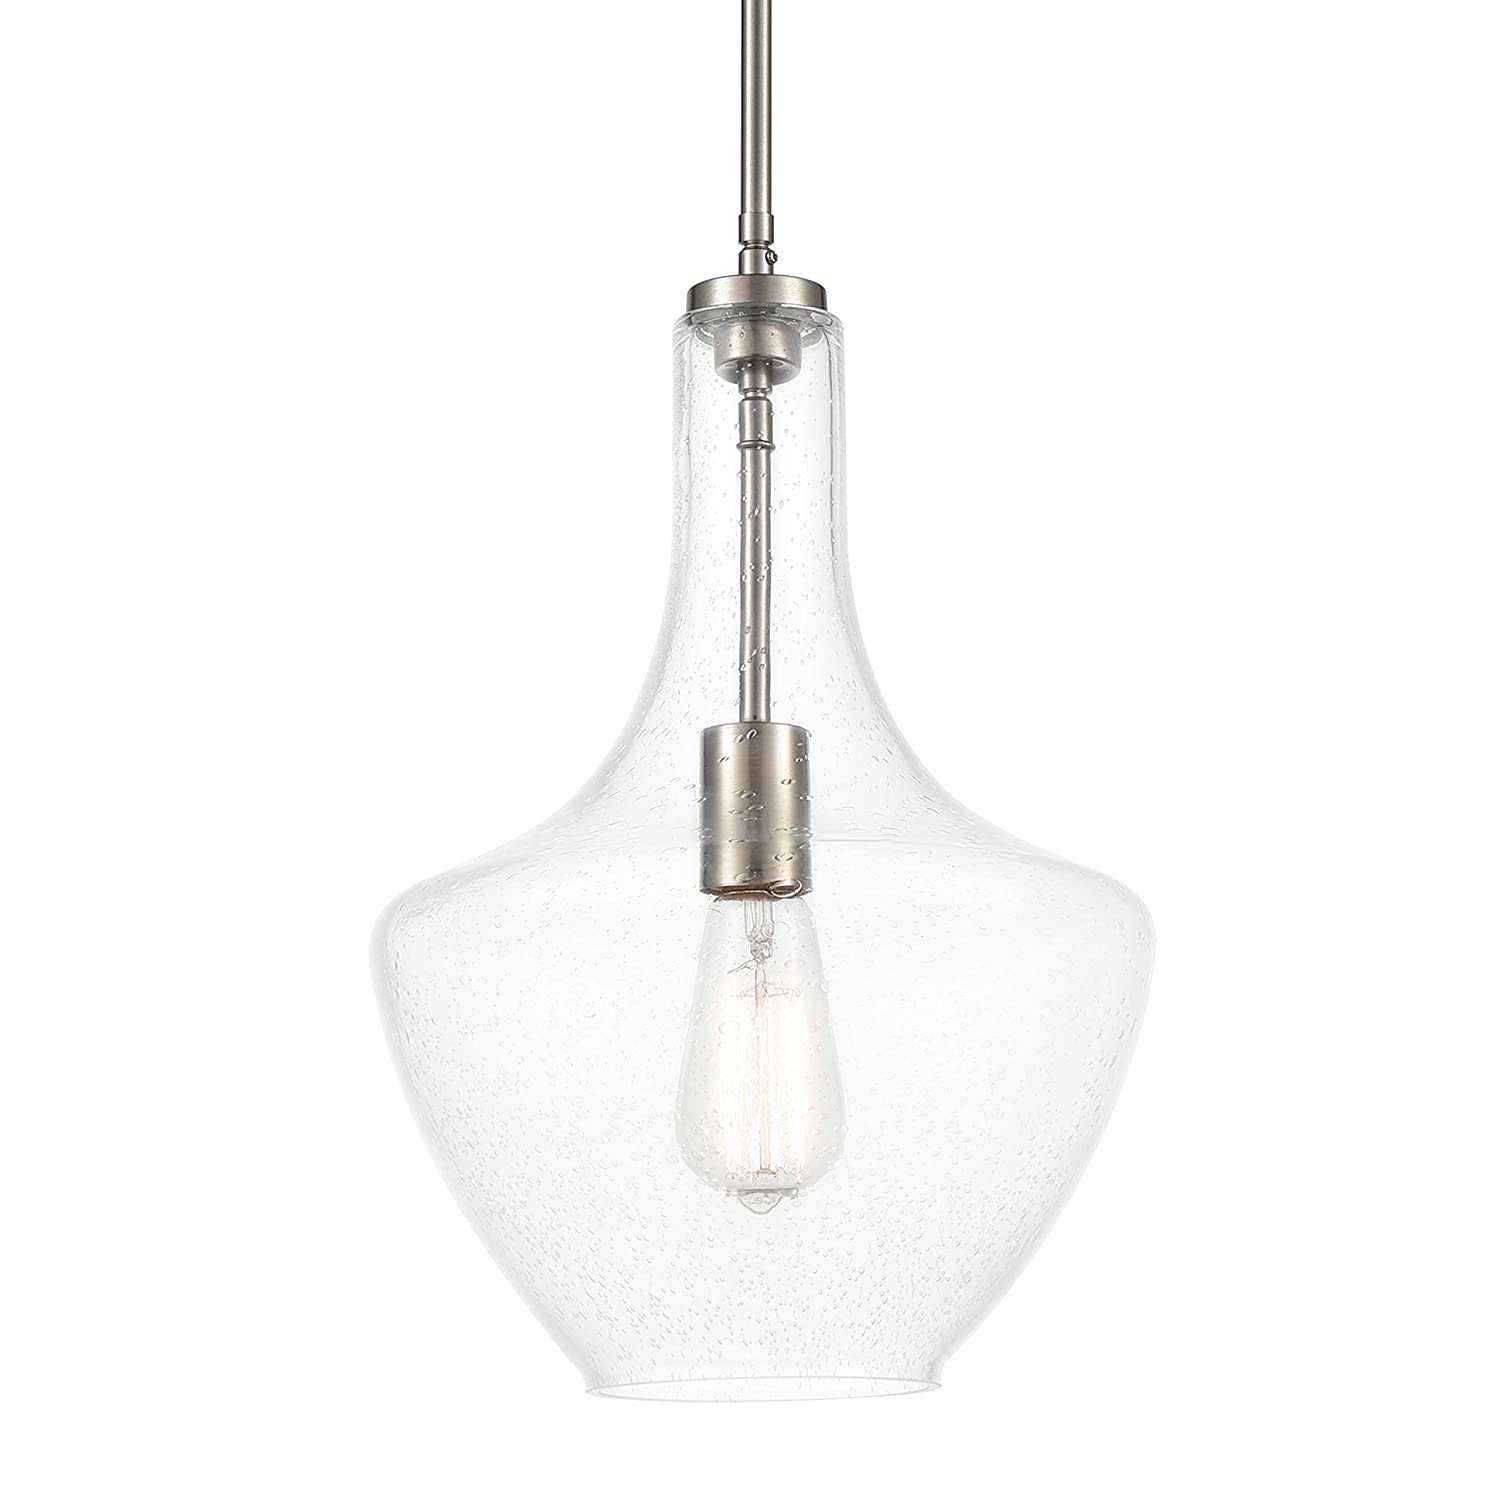 Light Society LS-C263-SN-SD Sienna Kitchen Pendant Swivel Adapter for Level or Sloped Modern Farmhouse Décor Hanging LED Ceiling Lights Fixture, Glass Shade, Satin Nickel/Seeded